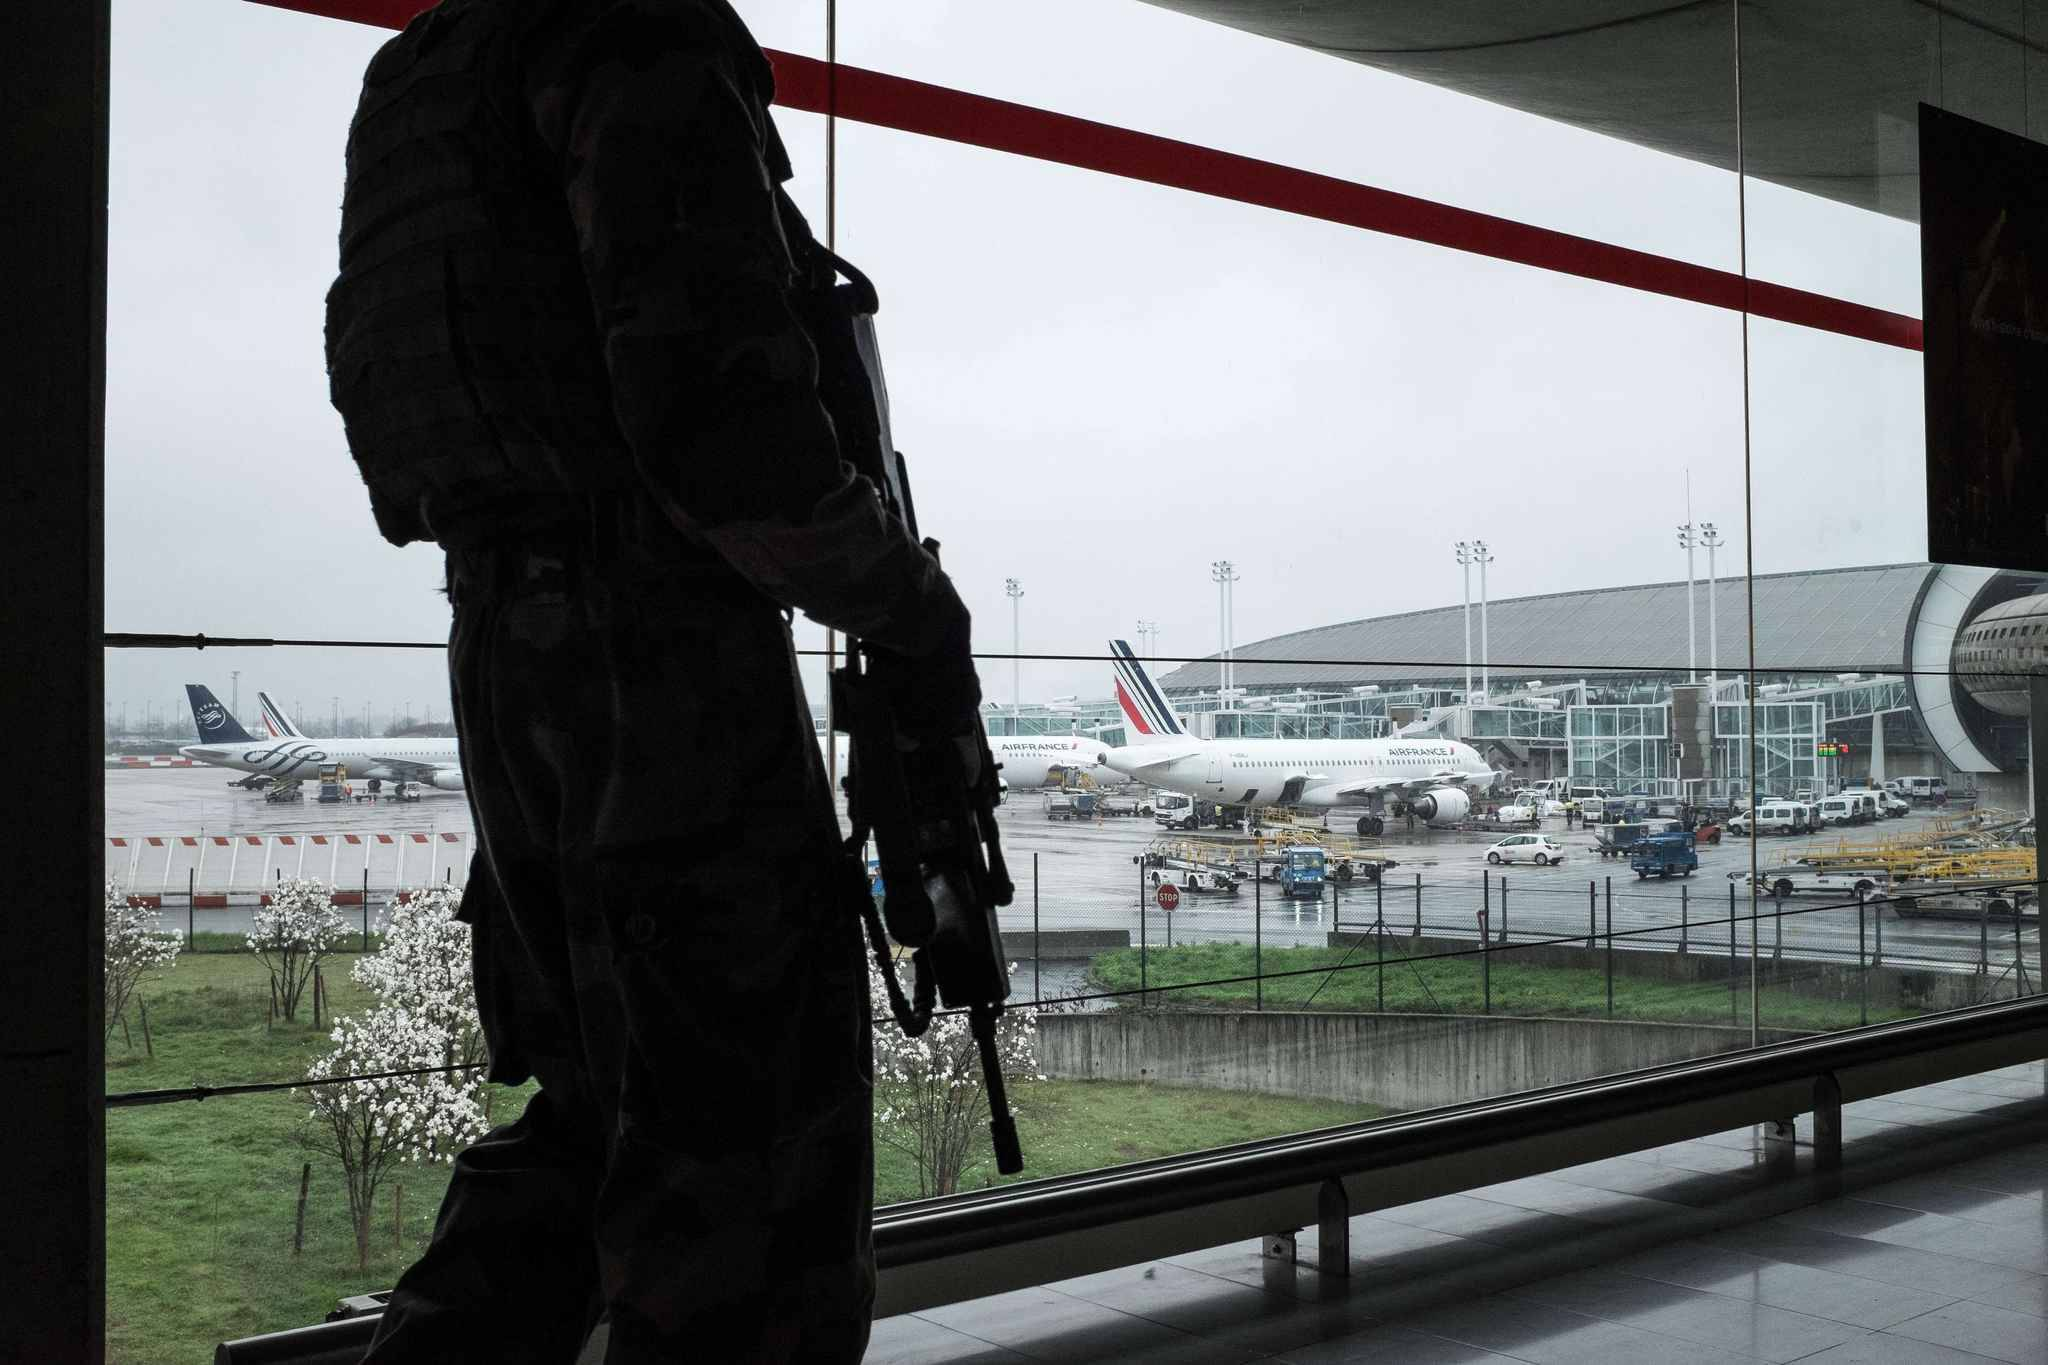 Le père de l'assaillant d'Orly nie toute intention terroriste — France